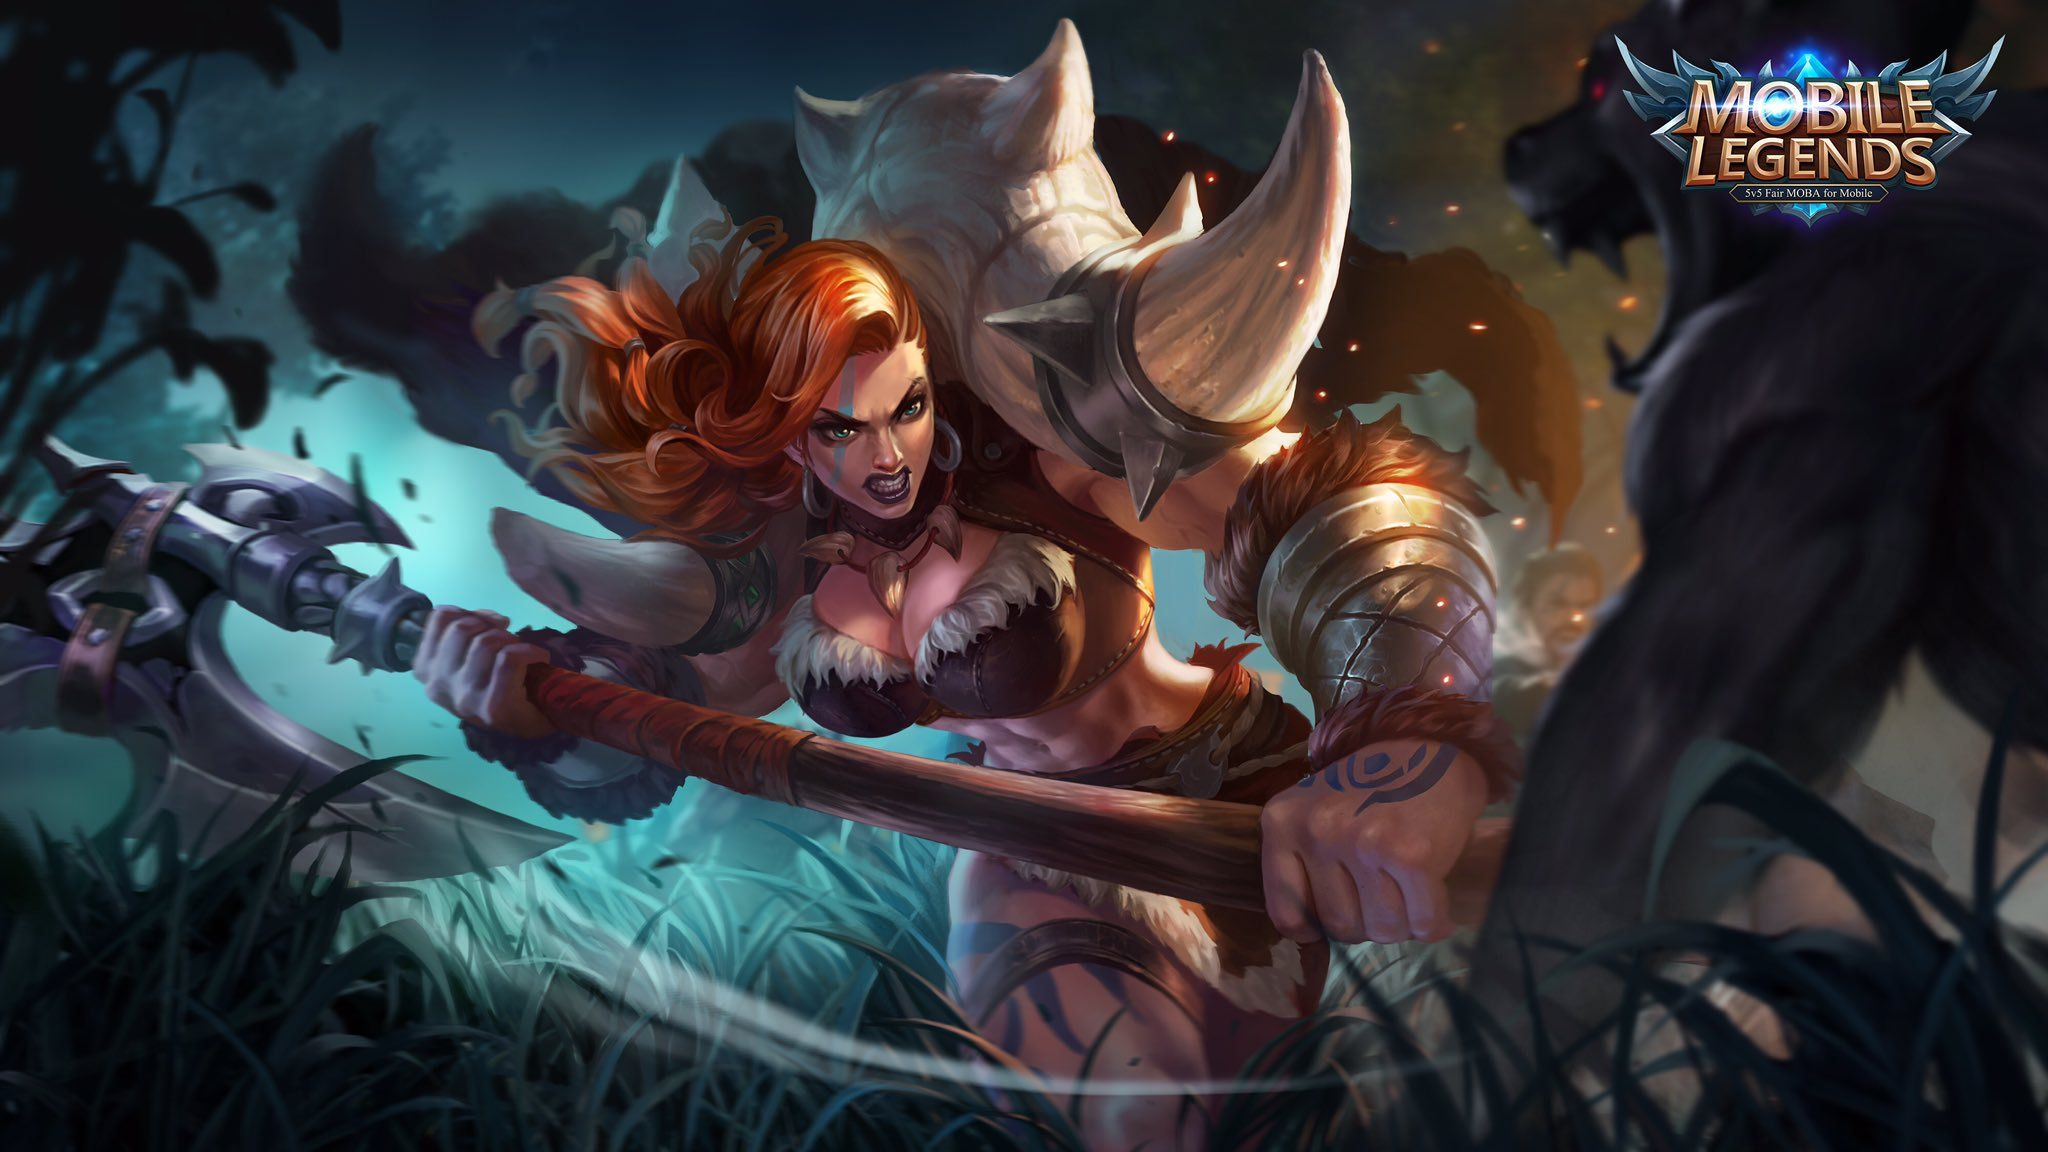 Wallpaper-Mobile-Legends-Hilda-Power-of-Megalith